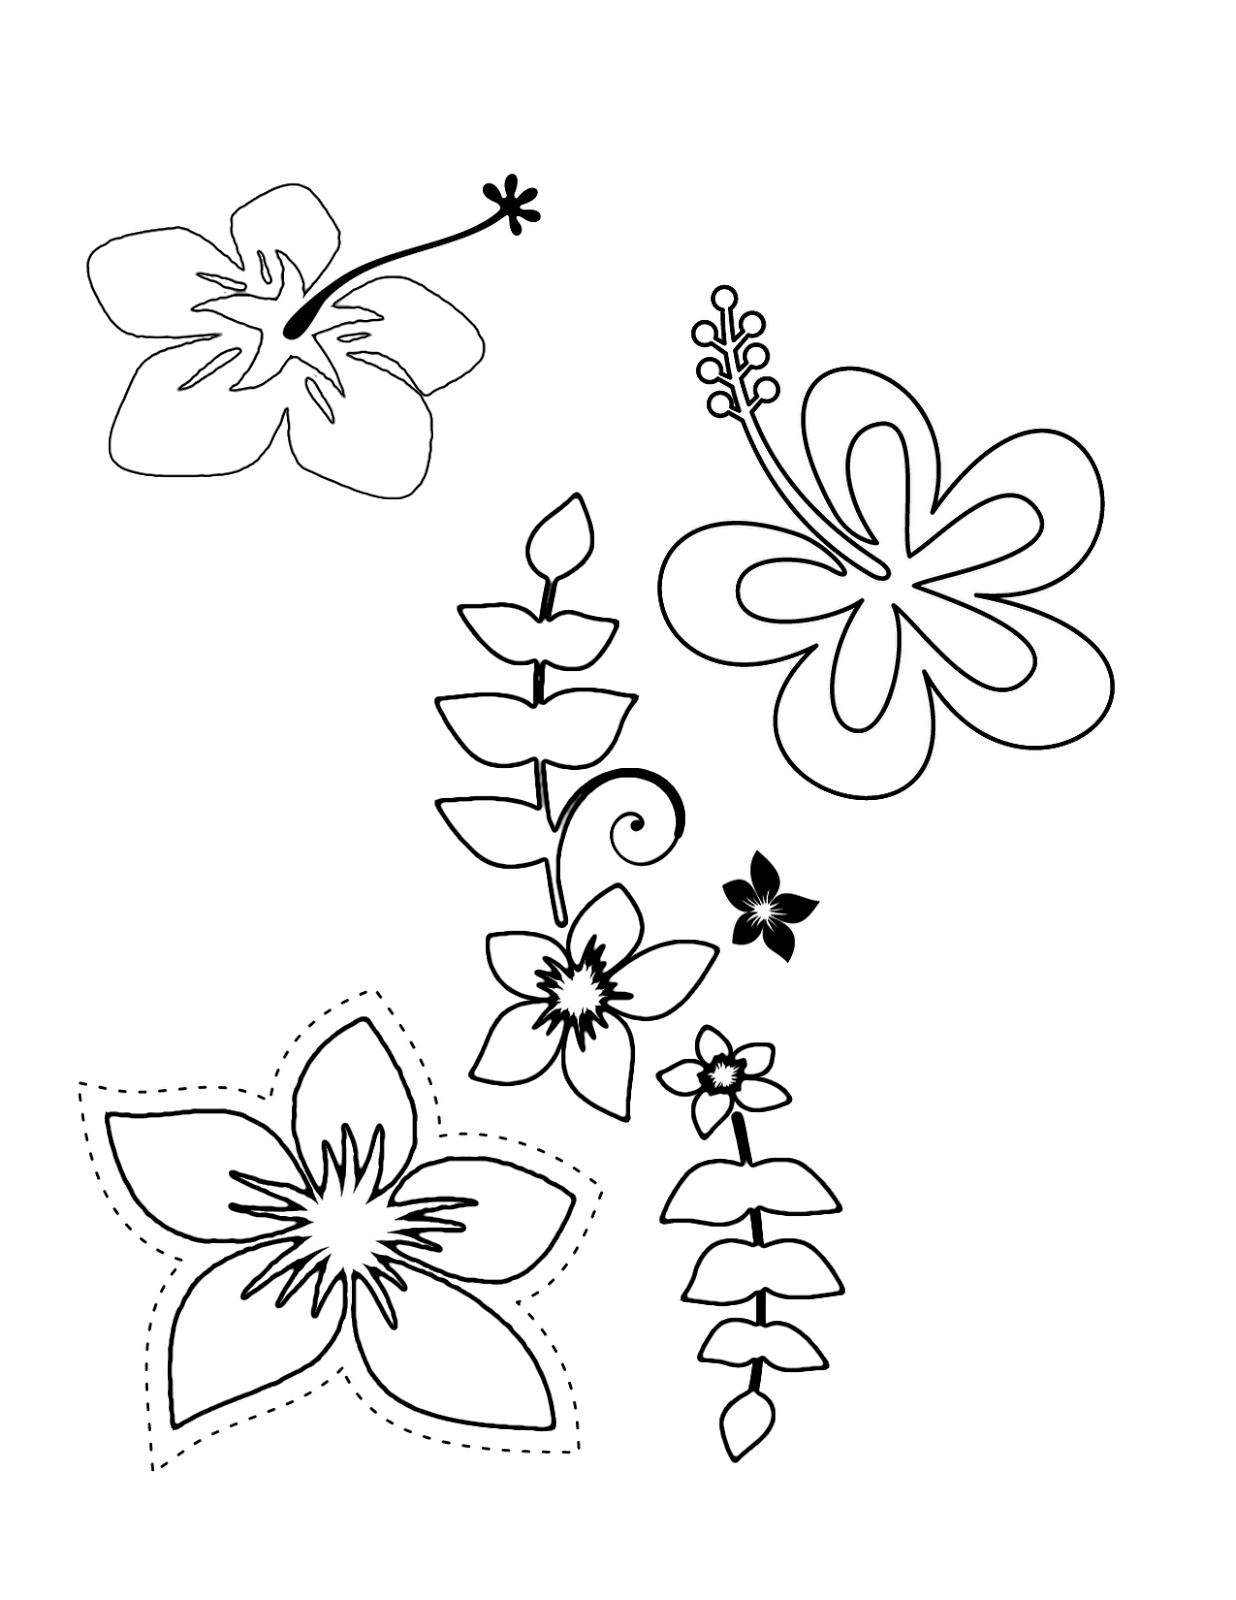 Tropical Flower Coloring Pages Flower Coloring Pages Flower Printable Hawaiian Flowers